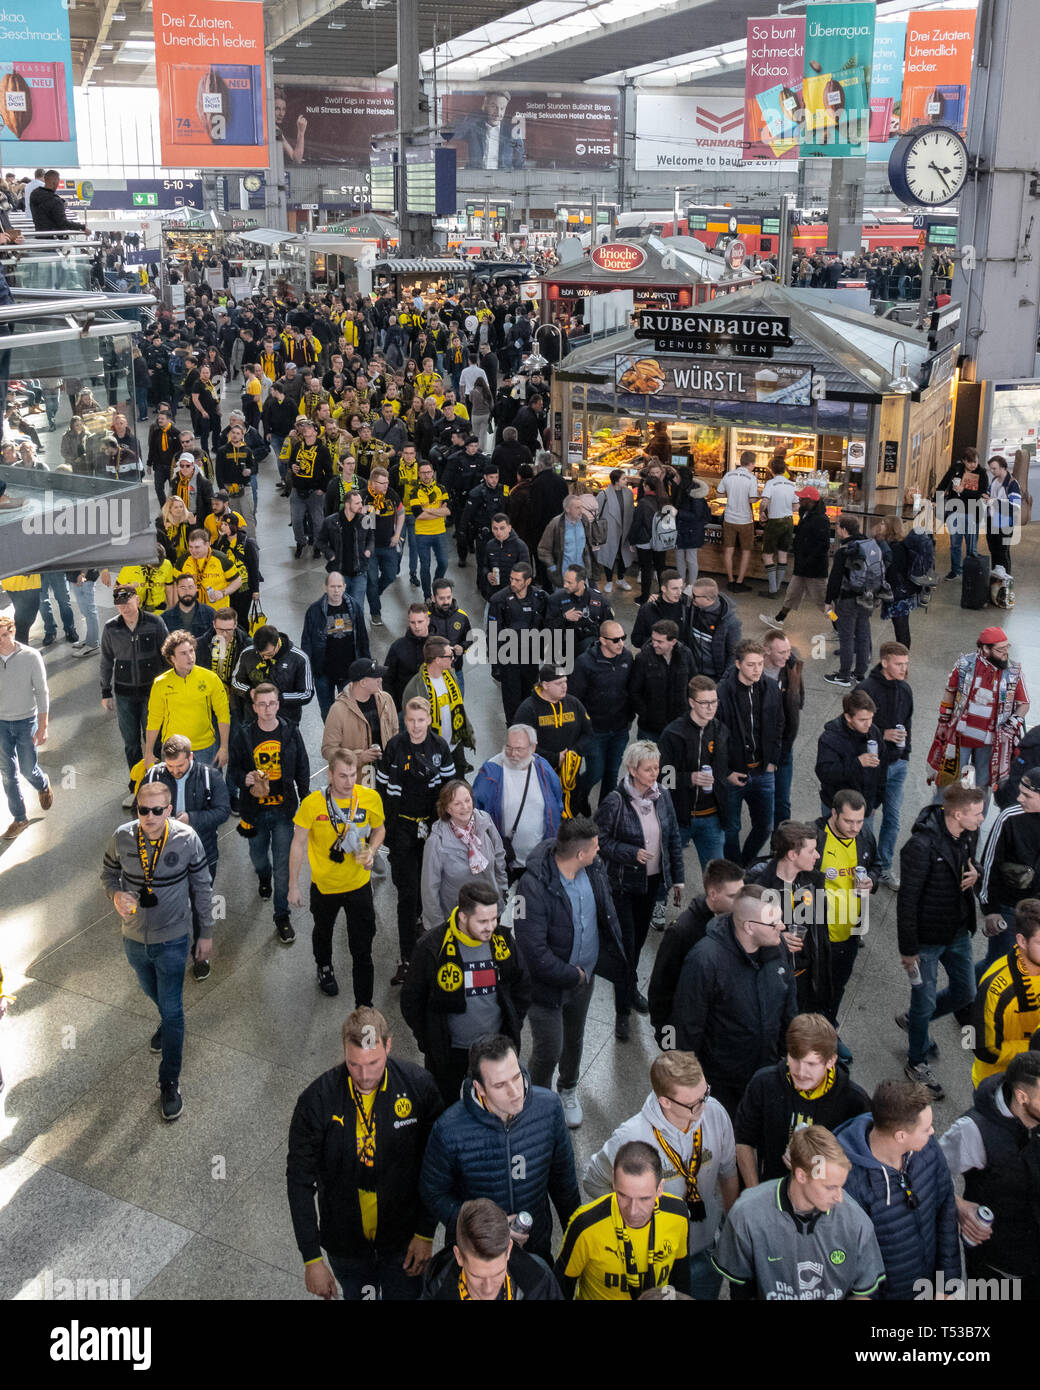 CENTRAL STATIONS, MUNICH, APRIL 6, 2019: bvb fans on the way to the soccer game fc bayern munich vs borussia dortmund Stock Photo